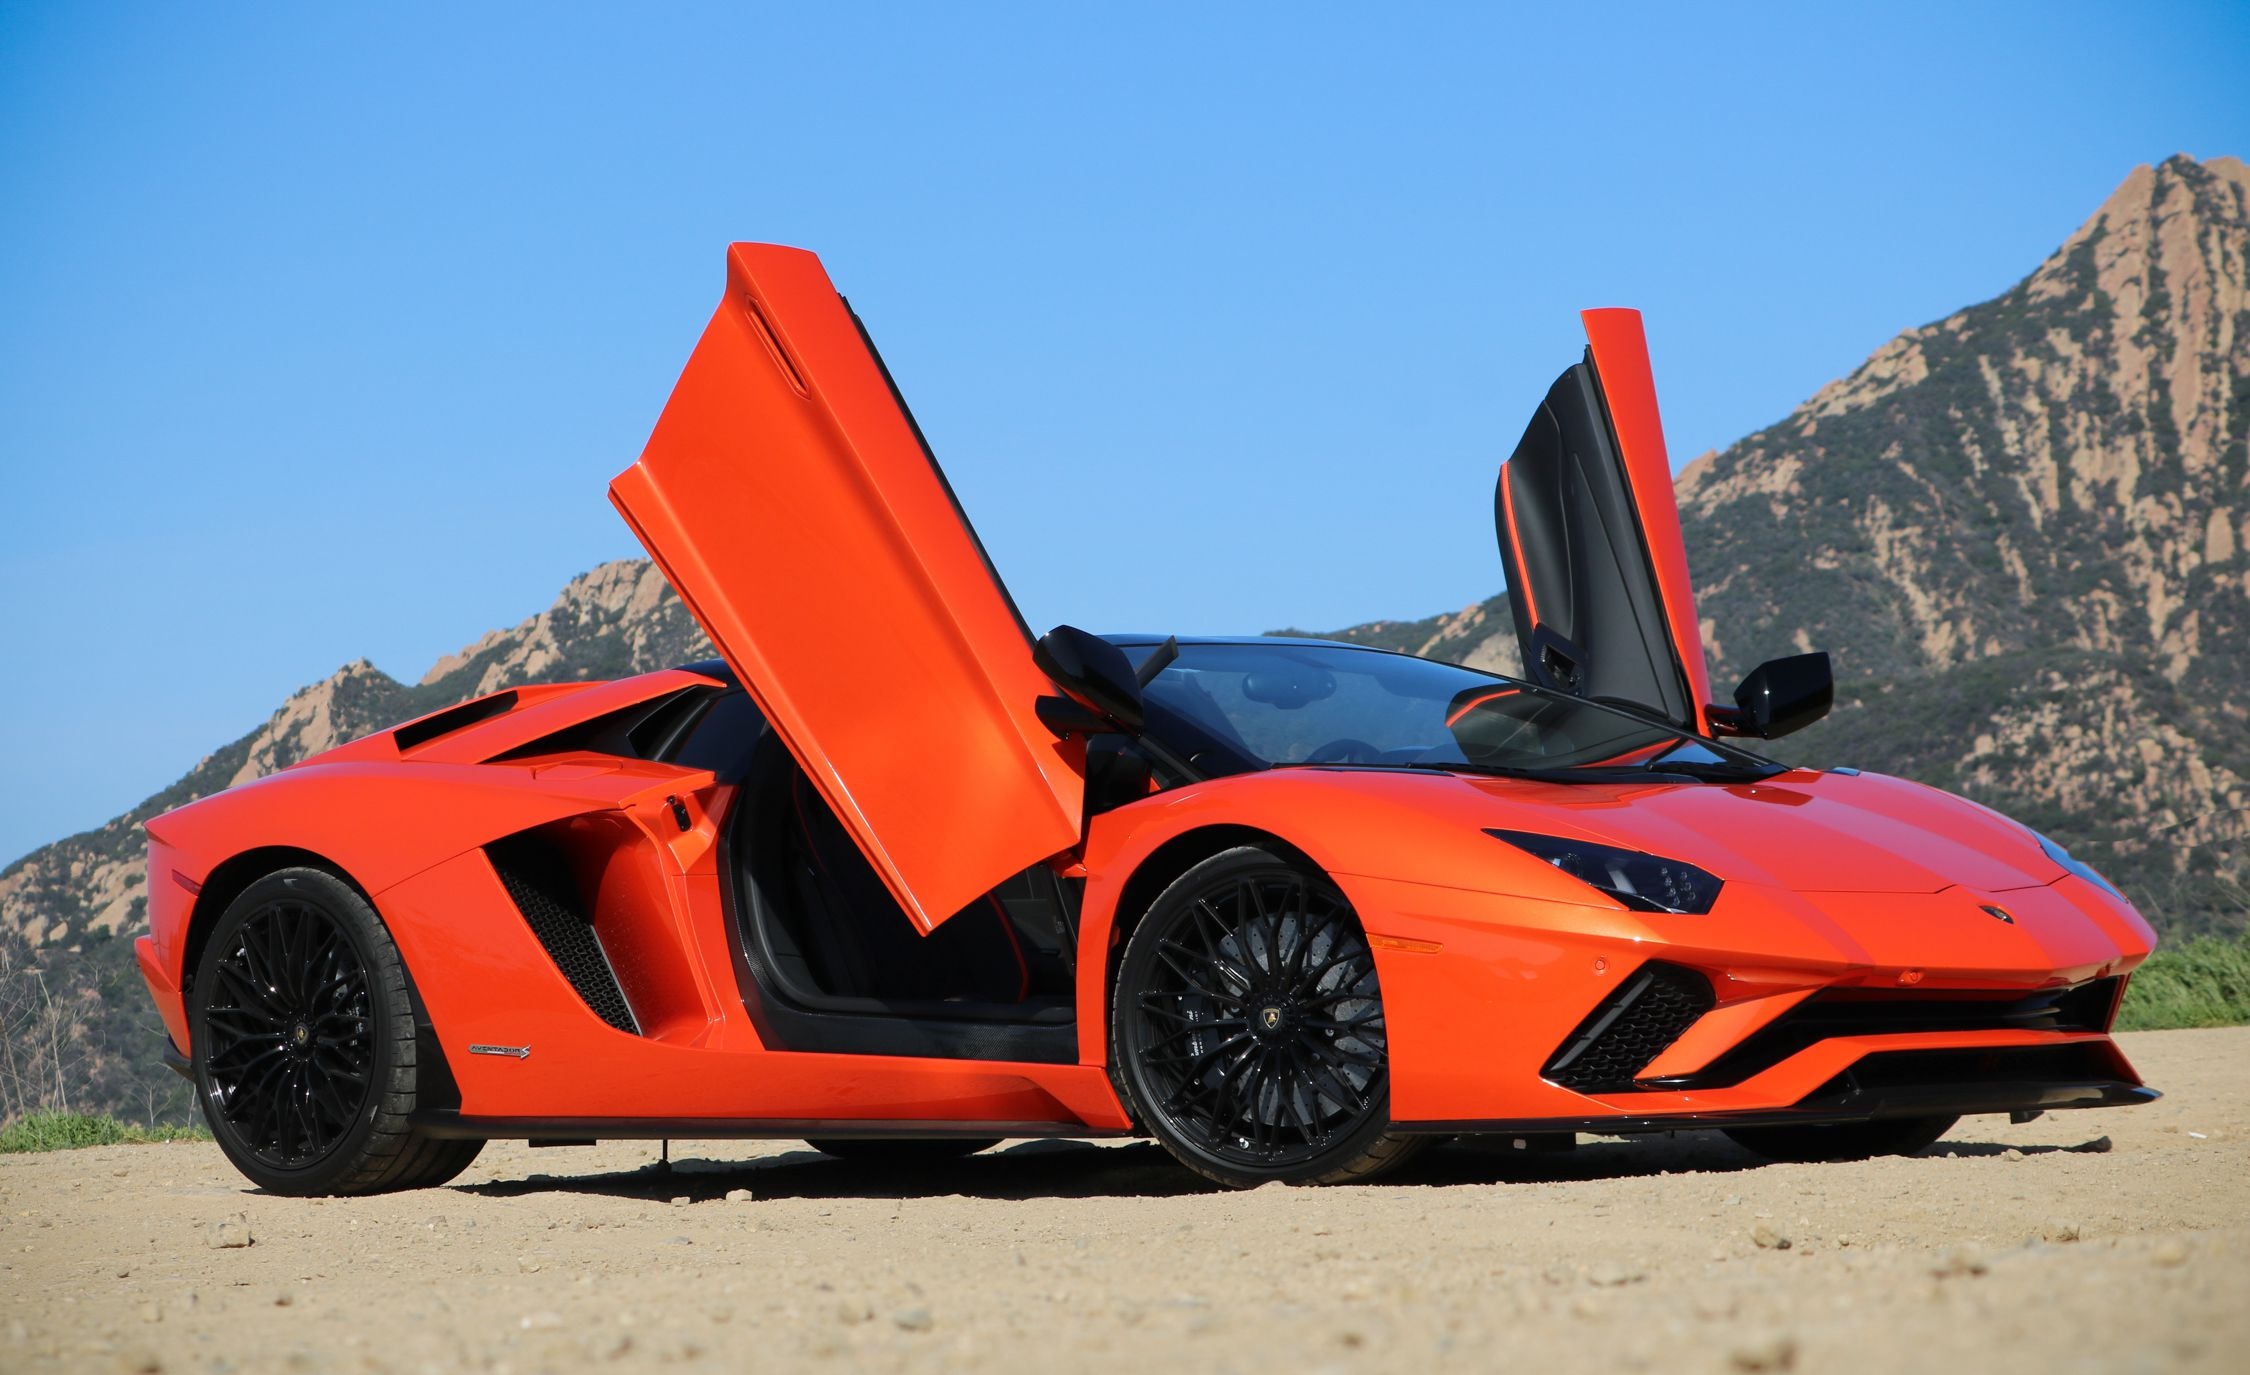 2018 Lamborghini Aventador S Roadster Doors Up Detail Wallpapers (1)